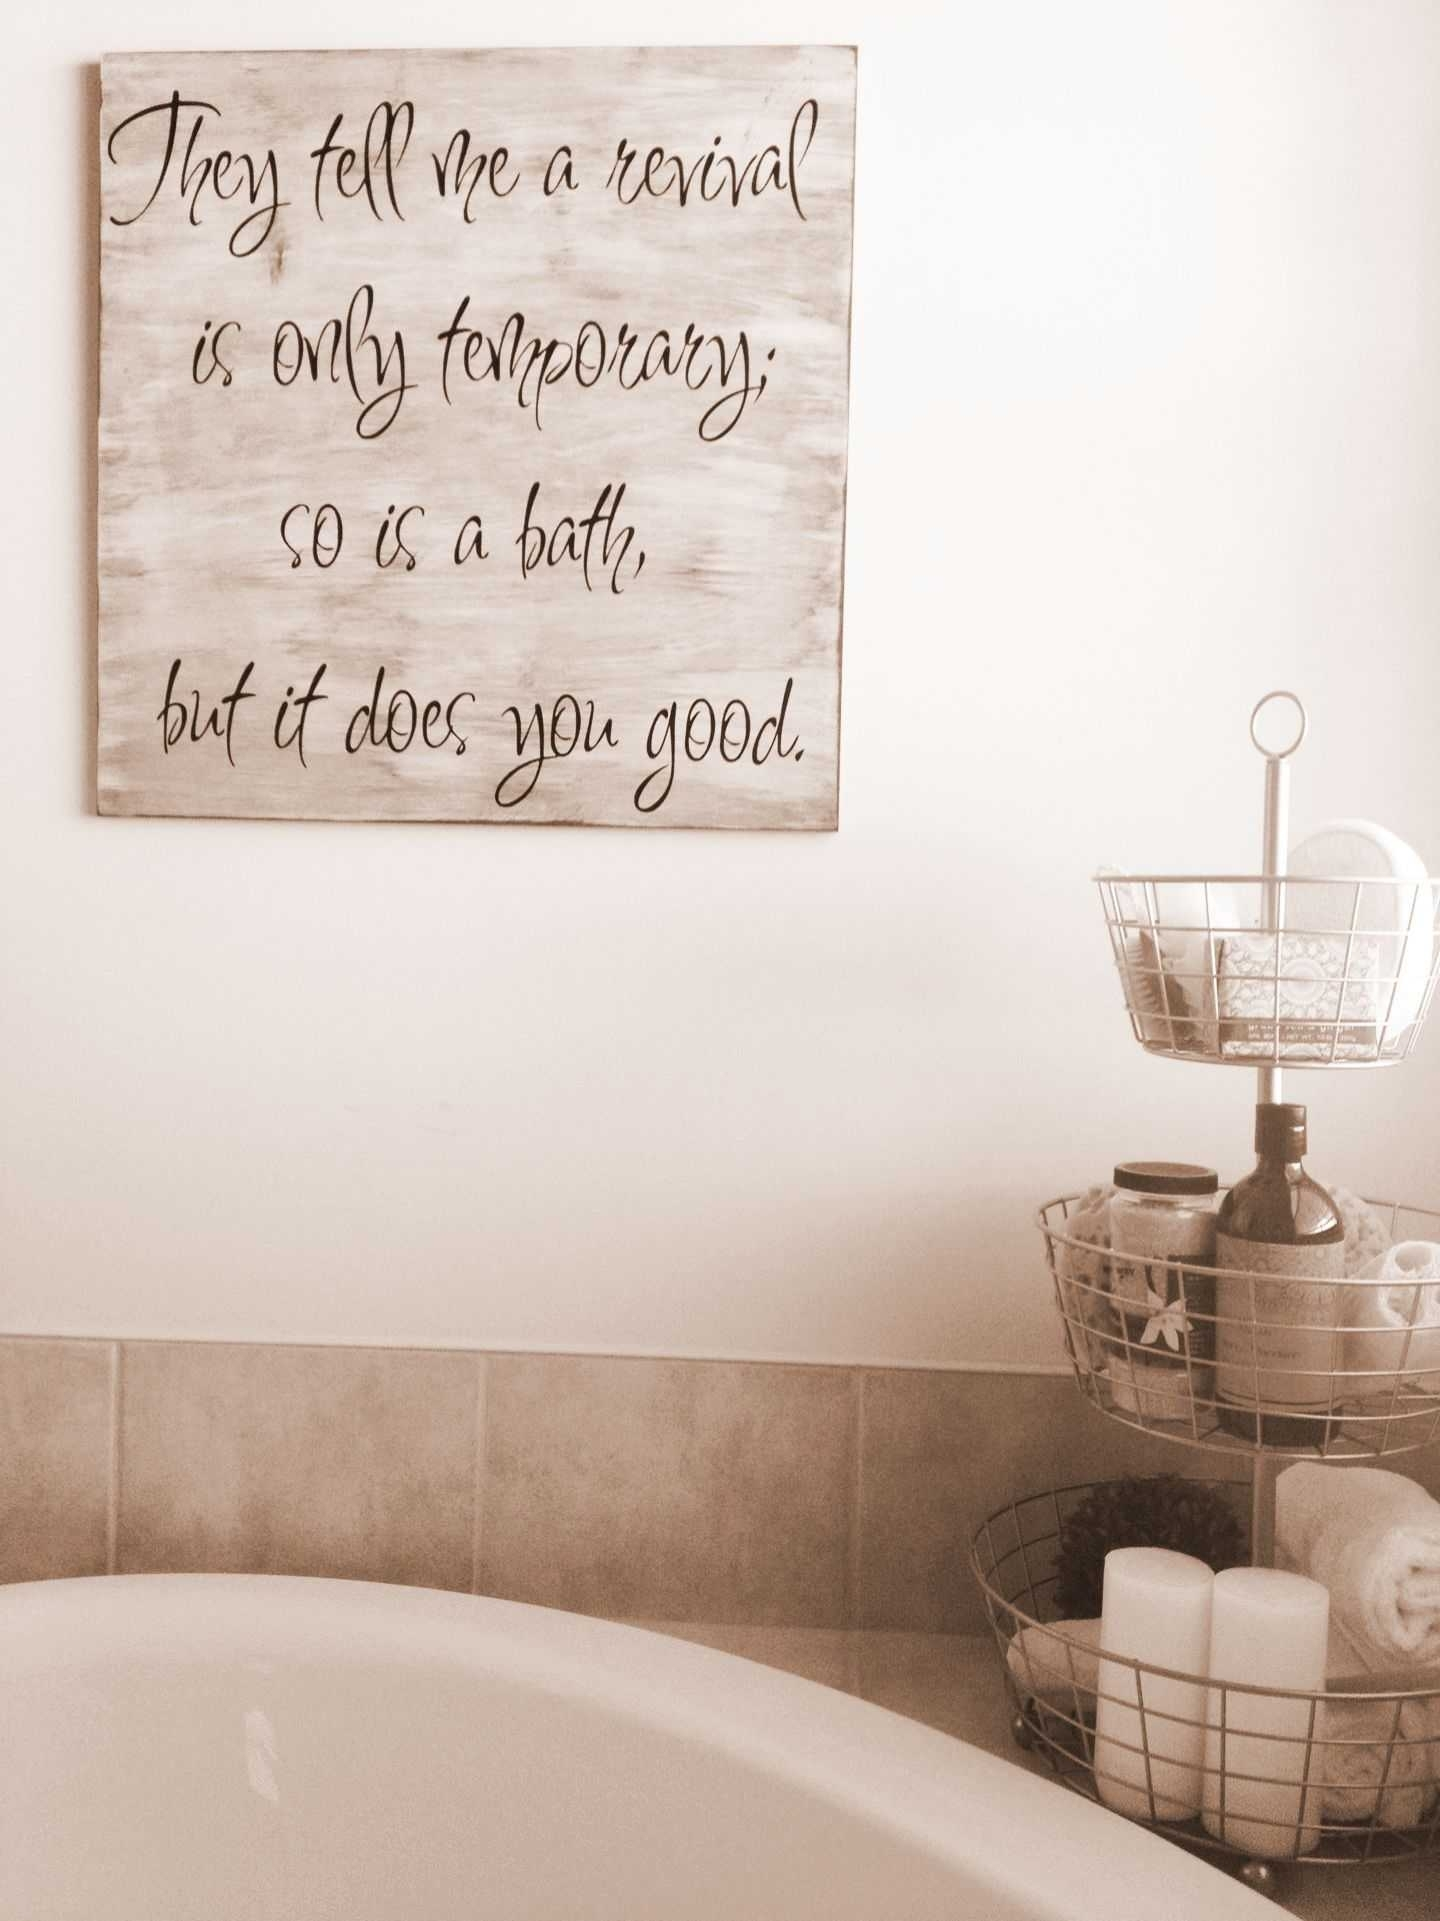 Wall Decorations For Bathroom Pictures Pinalexis Kole On House Throughout Current Wall Accents For Bathroom (View 14 of 15)